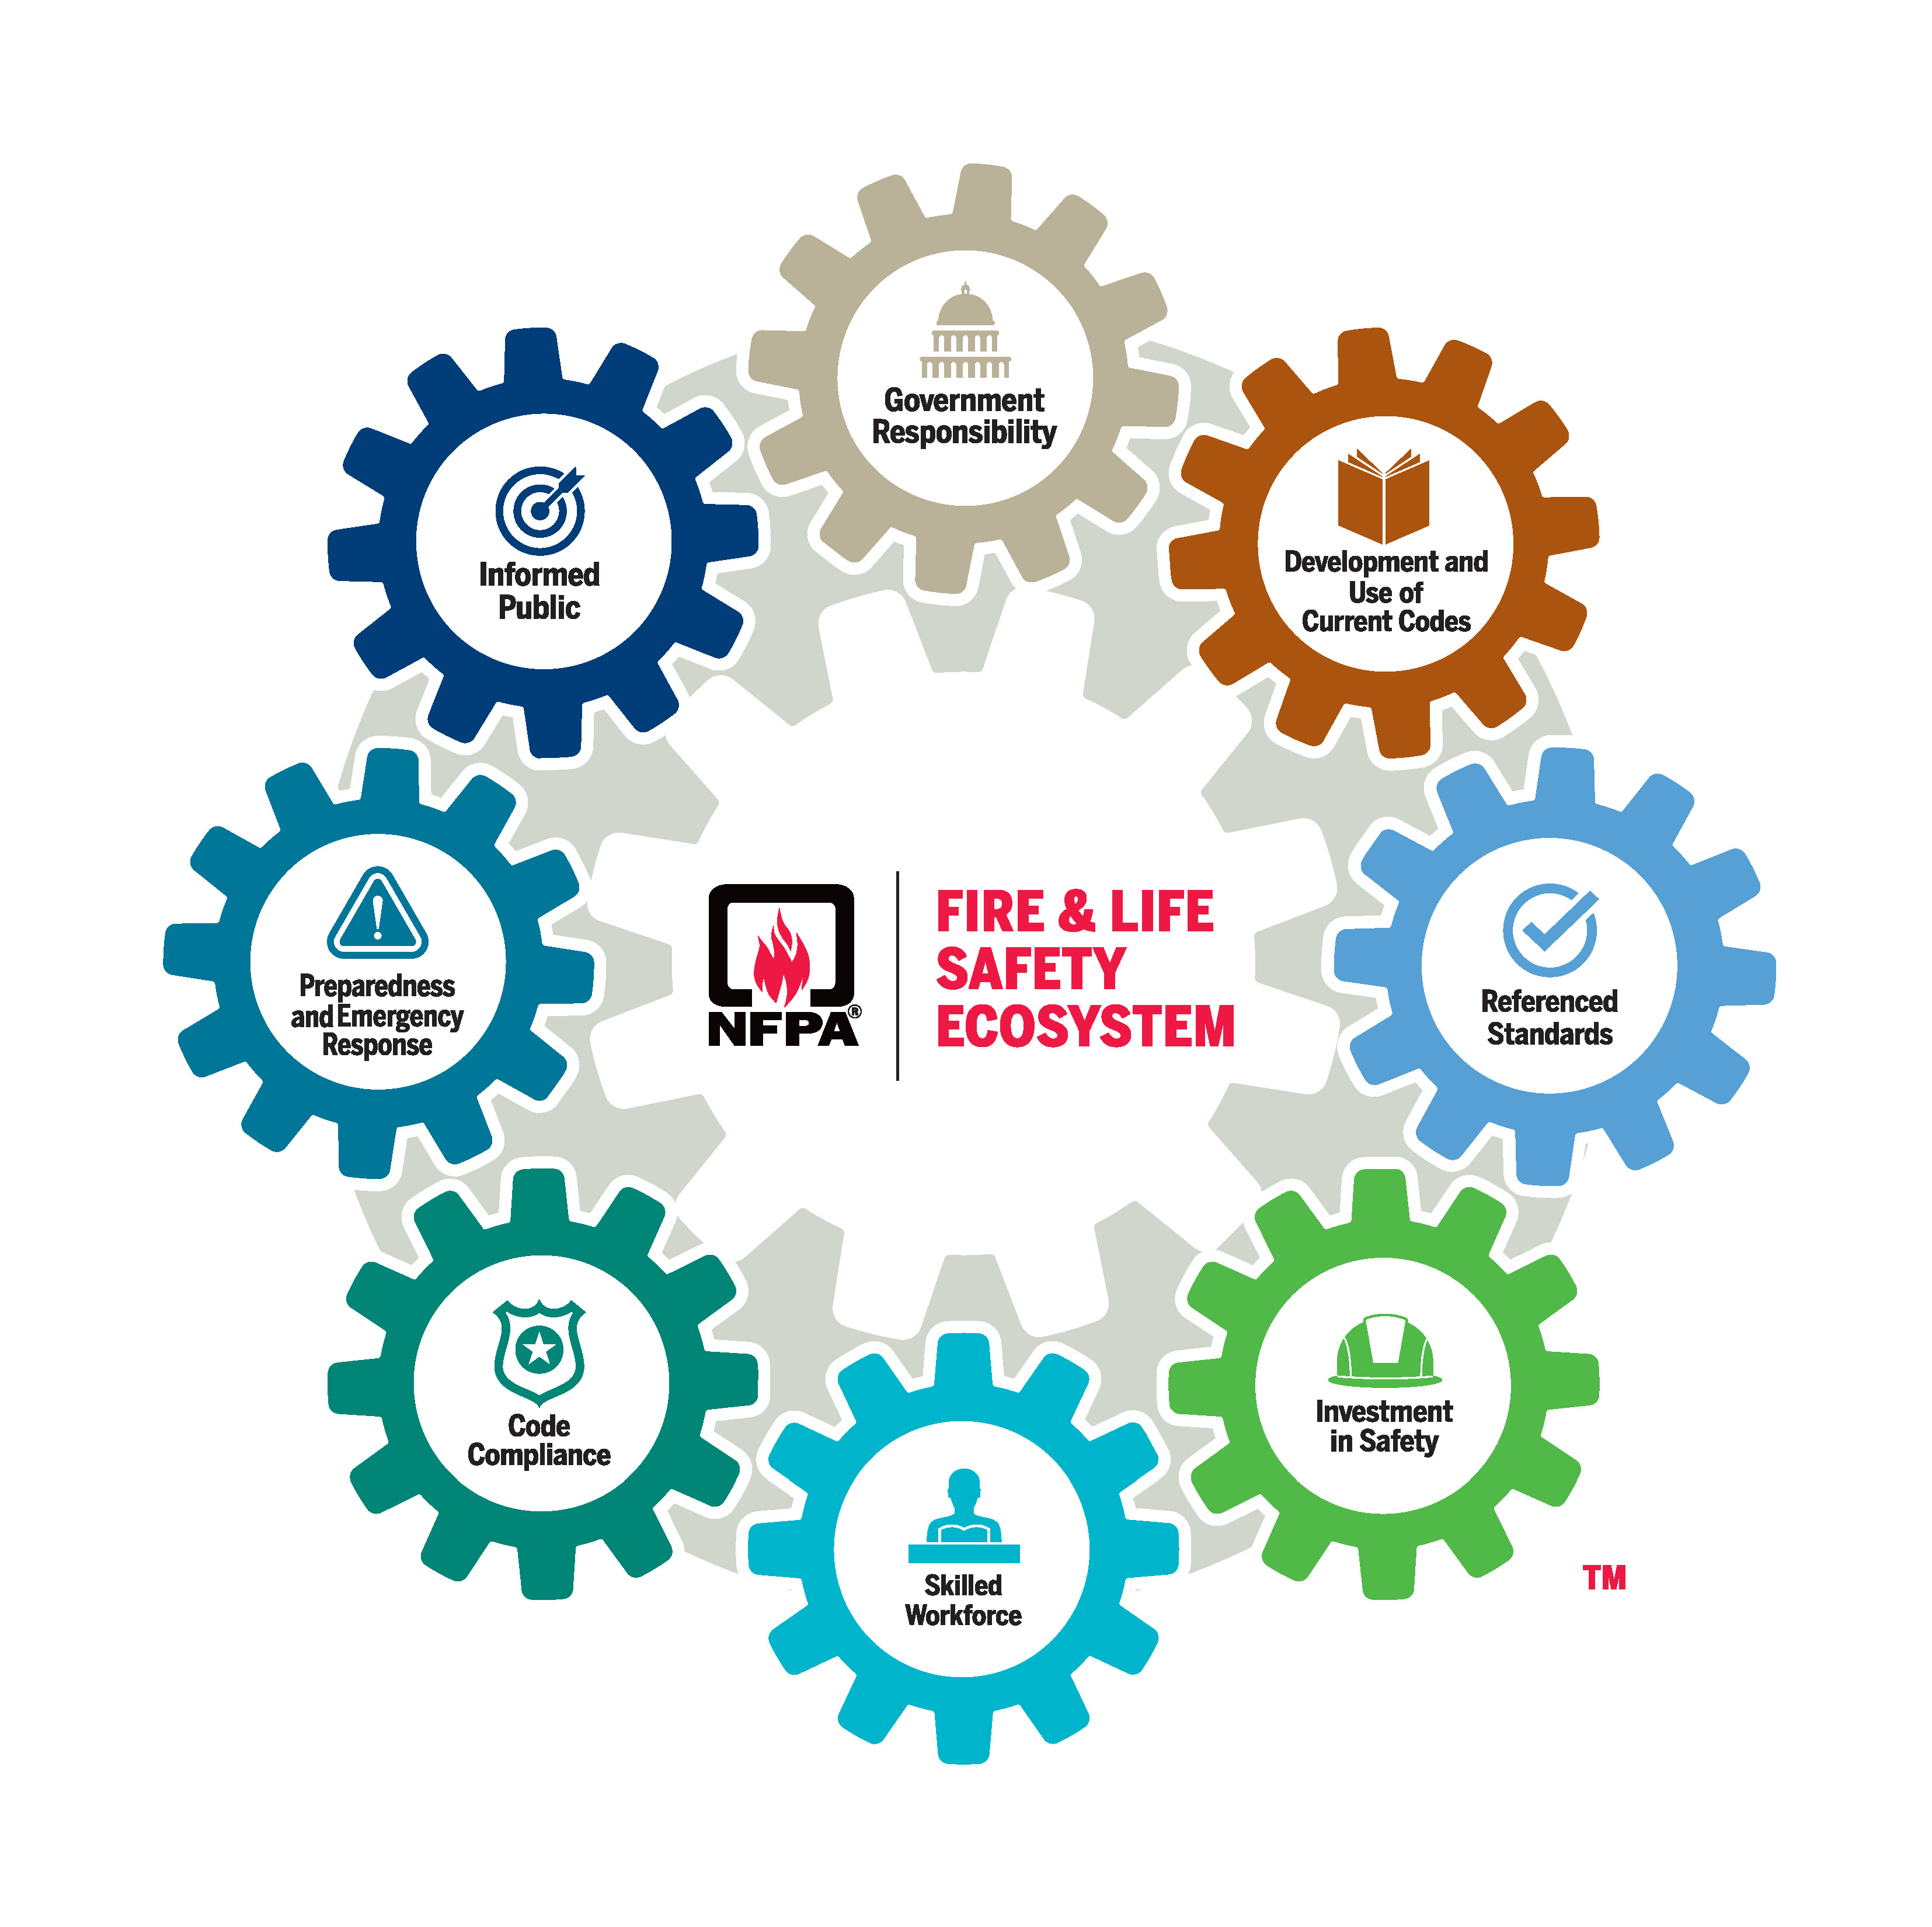 NFPA Fire and Life Safety Ecosystem